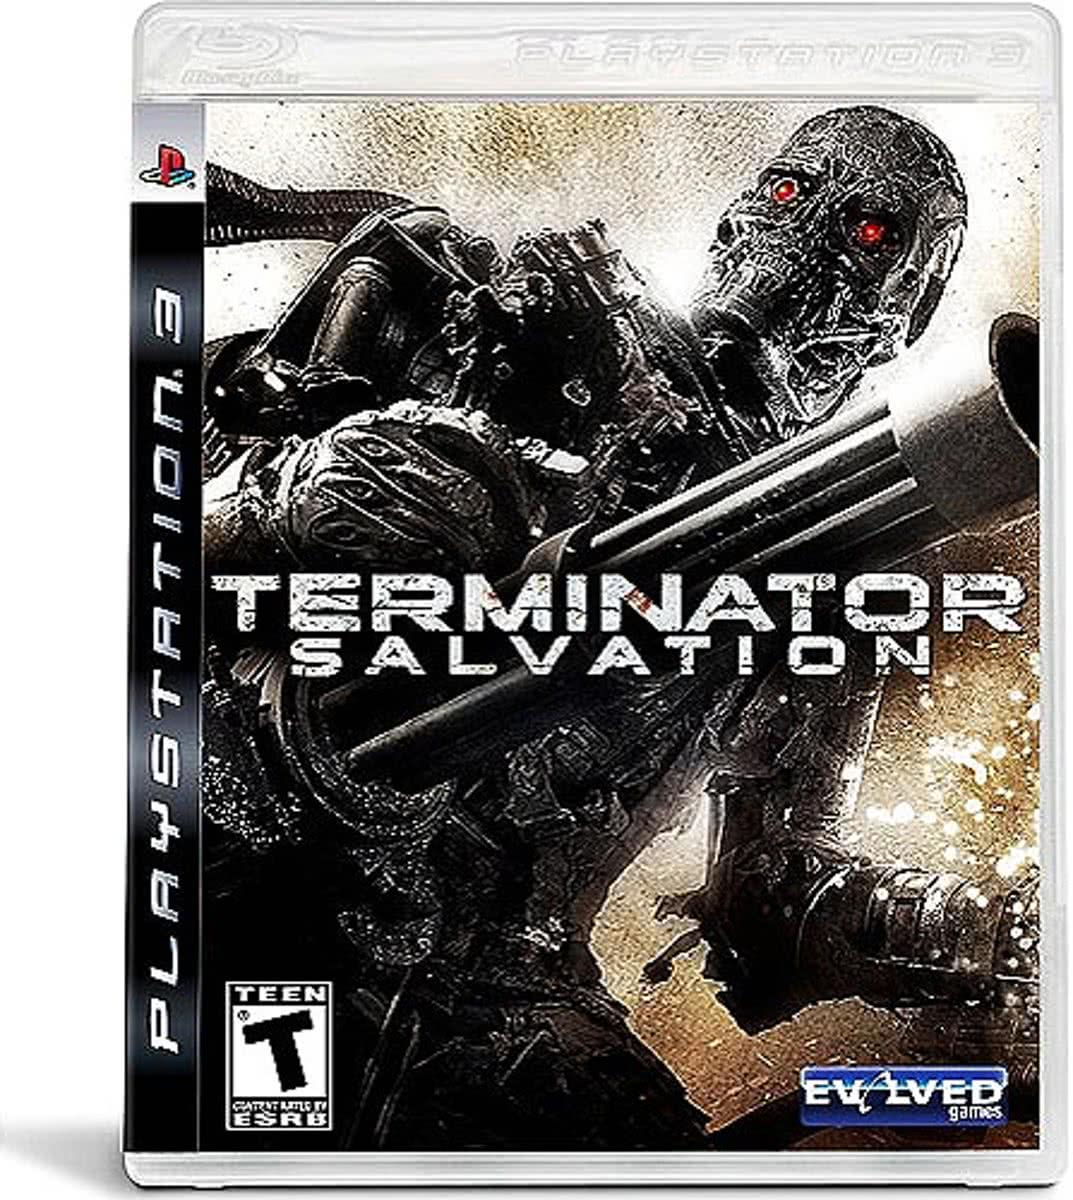 Warner Bros Terminator Salvation, PS3